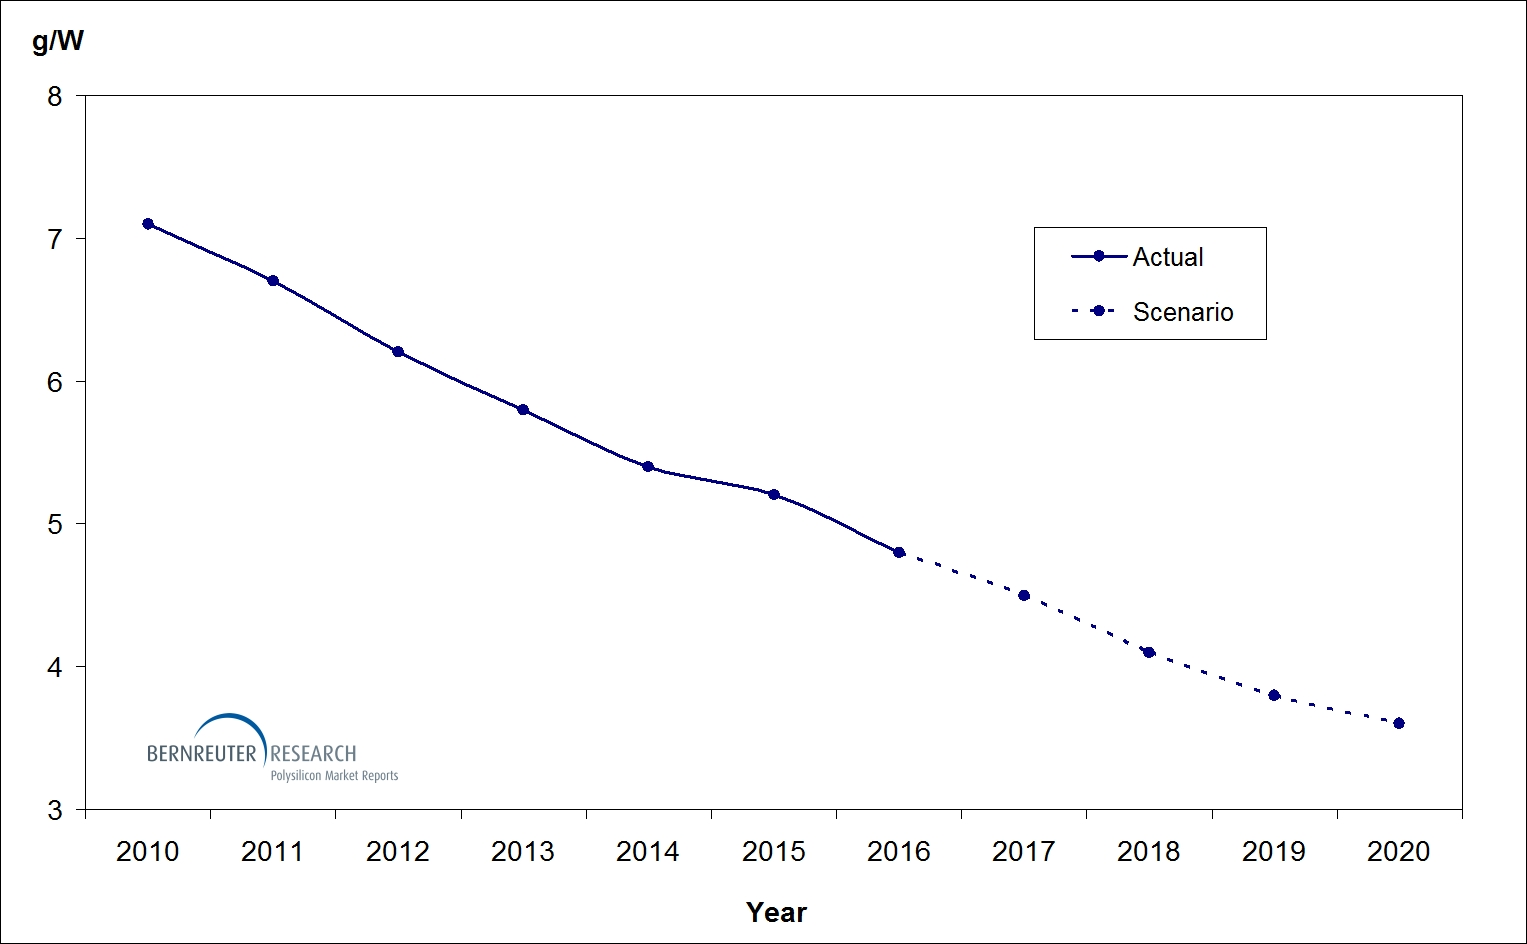 Bernreuter Research said that the average silicon consumption for the manufacturing of both multicrystalline and monocrystalline wafers was expected to decline from 4.8 grams per watt (g/W) in 2016 to 3.6 g/W in 2020, a 25% decline. Image: Bernreuter Research